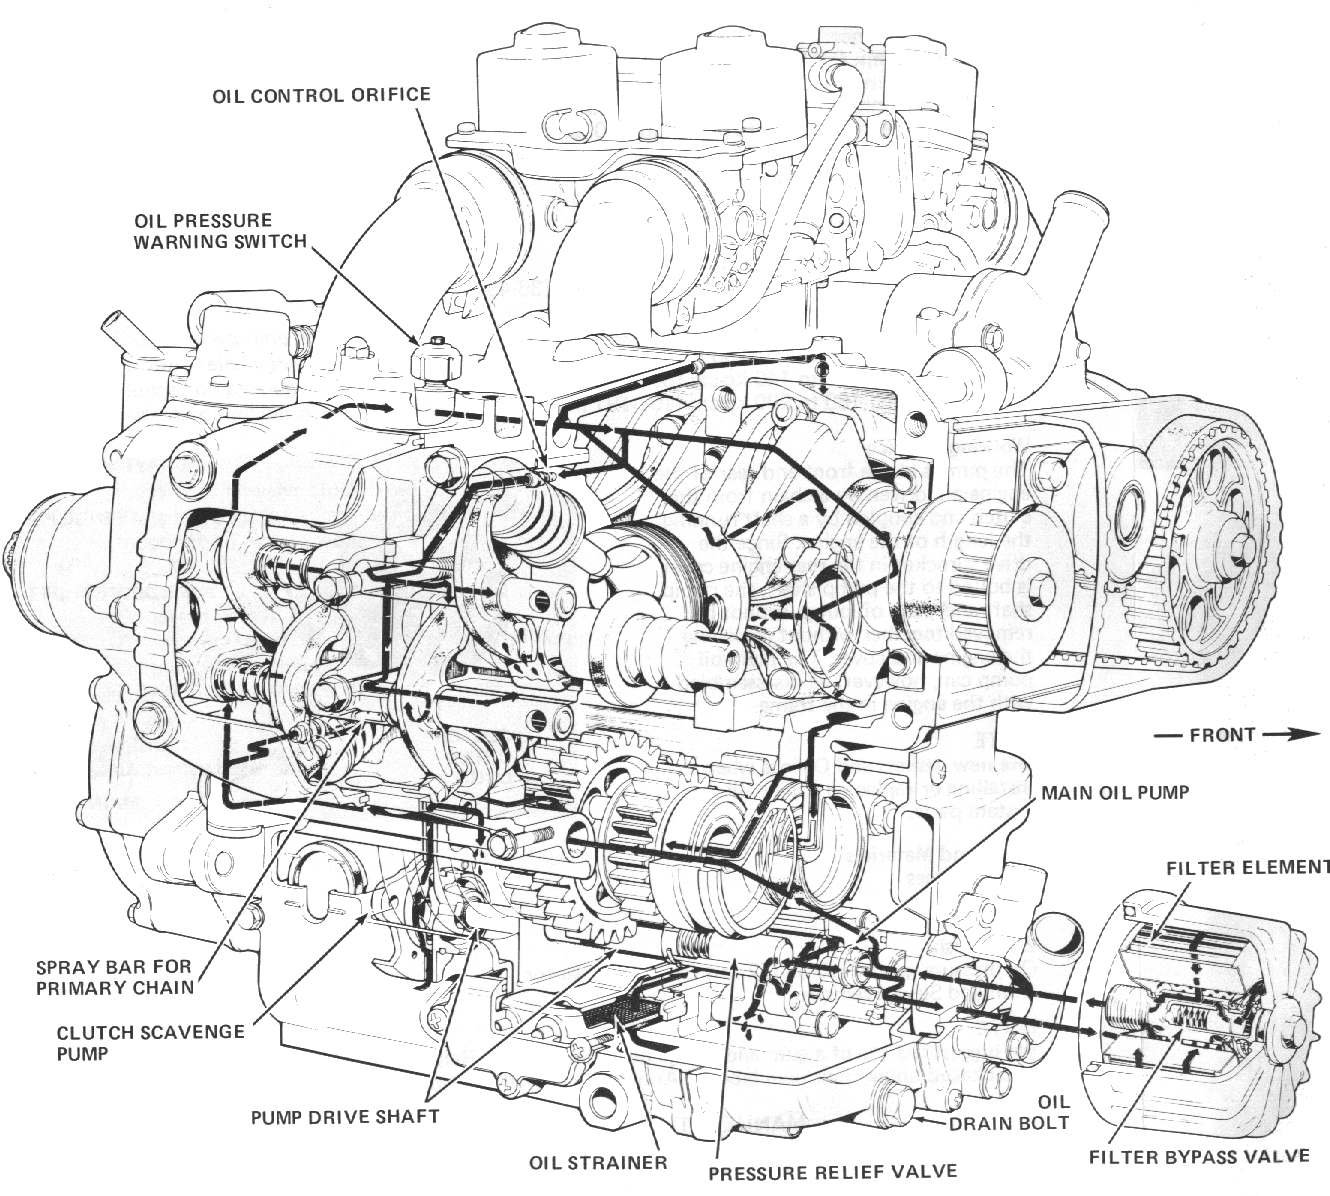 Motorcycle Engine Drawing At Free For Personal Use Basic Diagram 1330x1196 Dans Four Stroke Oil Flow